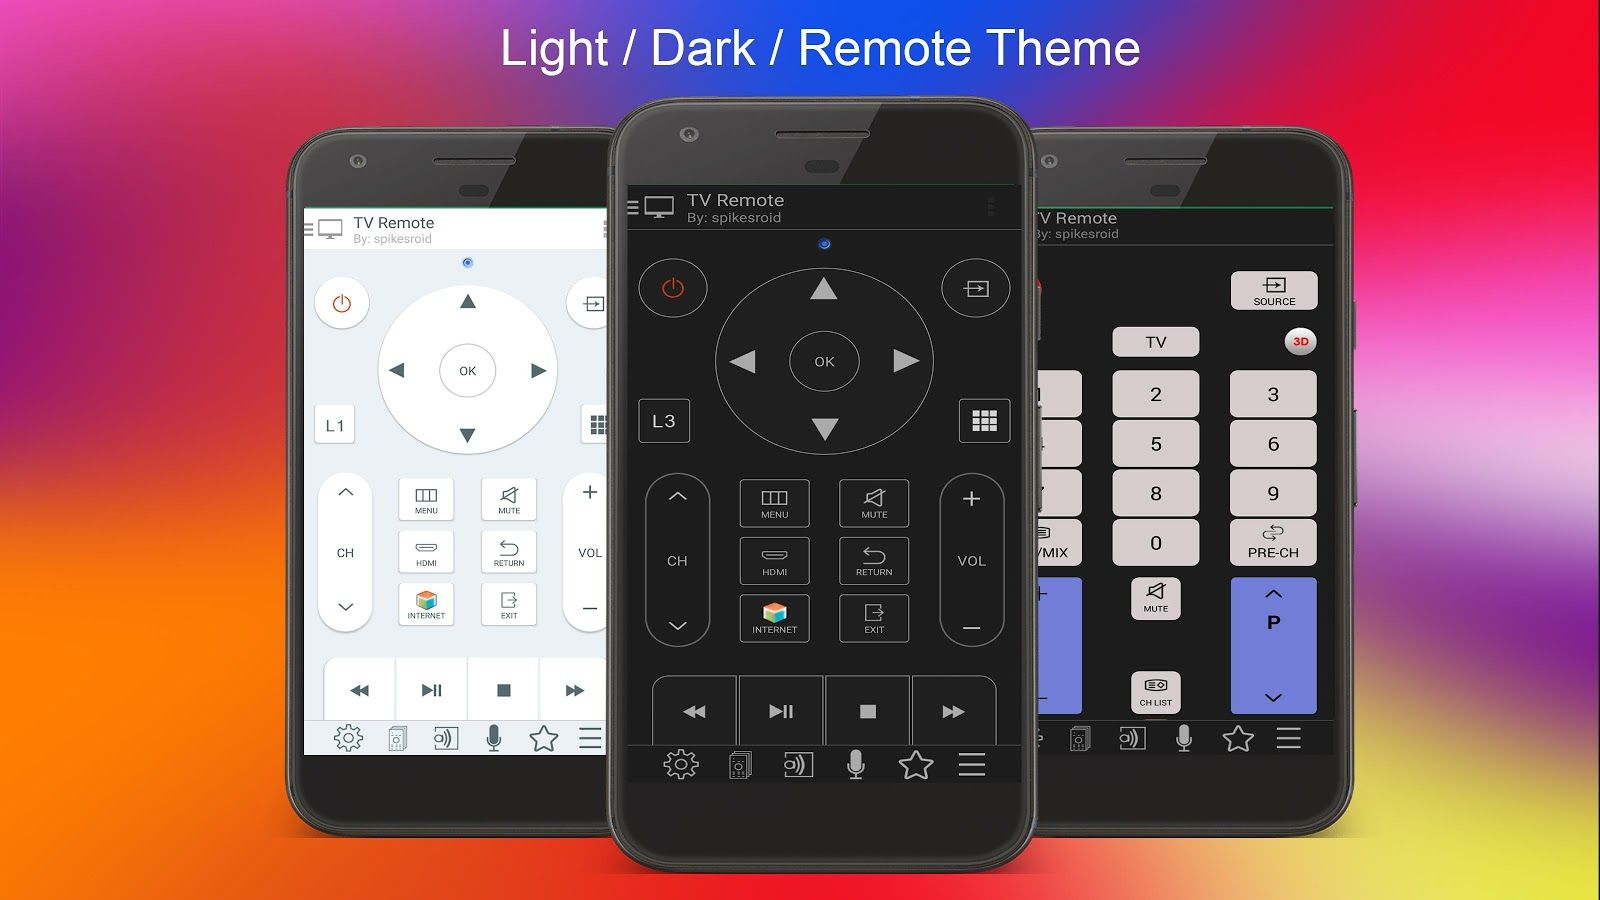 Nine Android Tv Remote Apps Uncovered As Adware Remote App Android